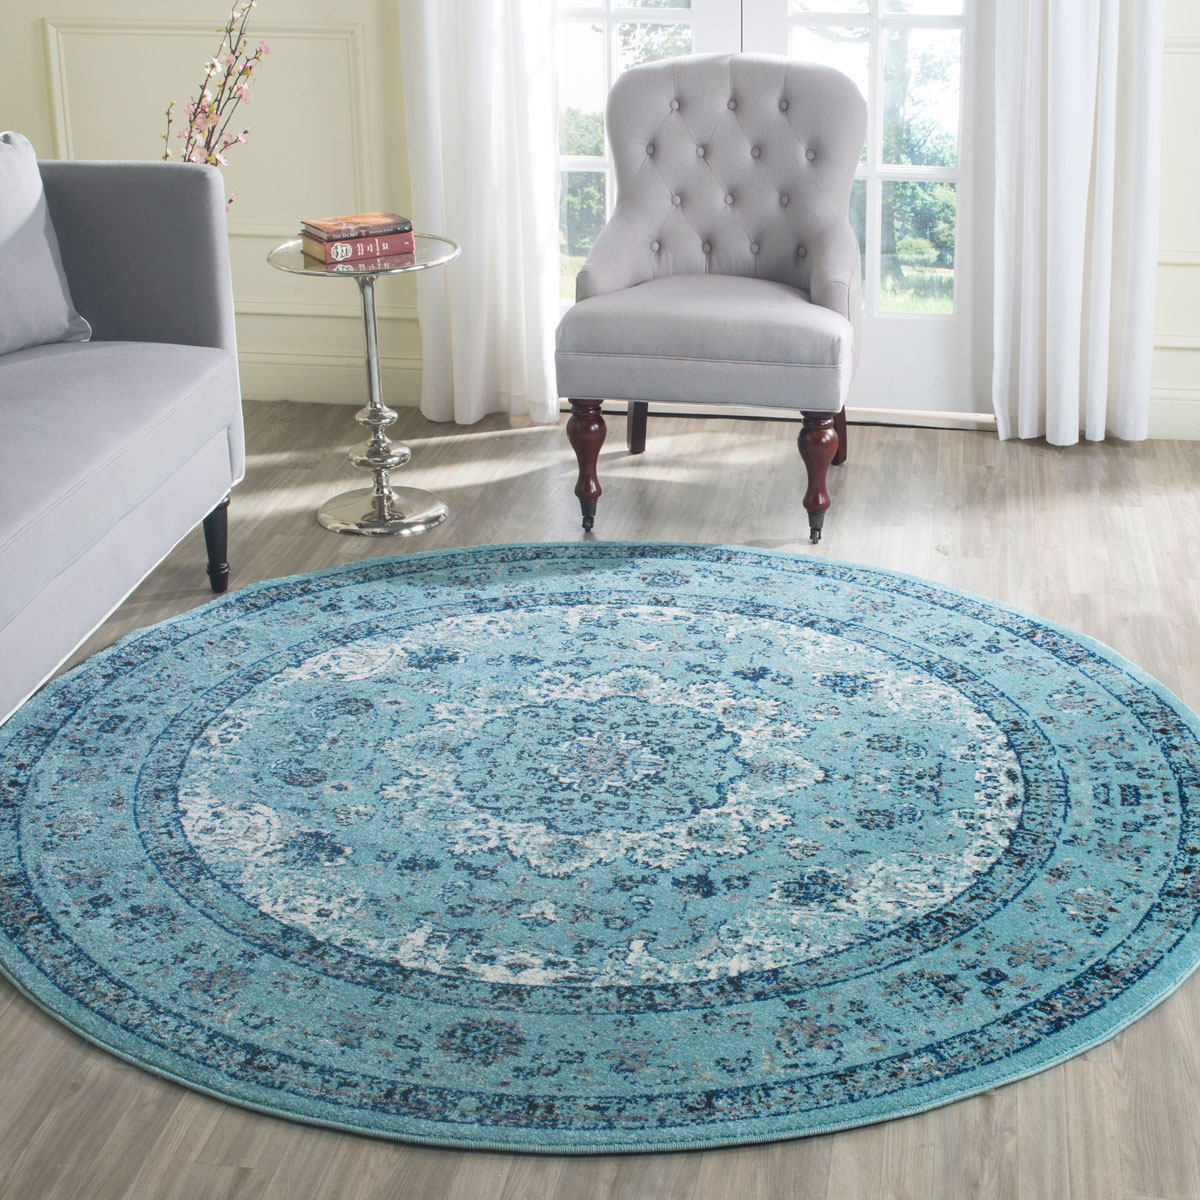 Rug Evk220e Evoke Area Rugs By Safavieh